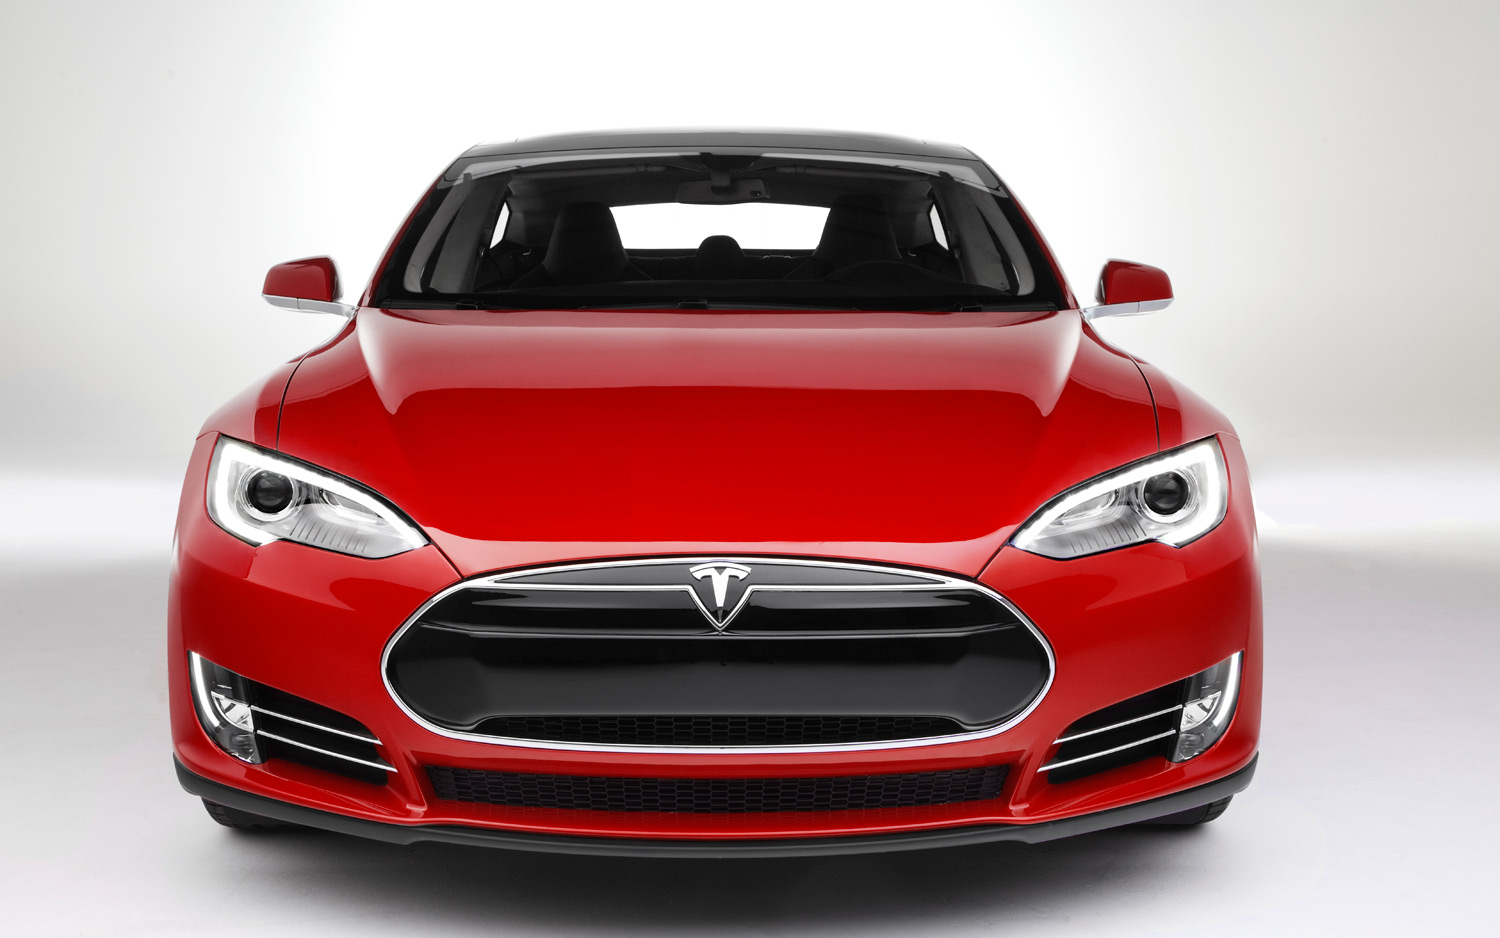 Driving Tesla Model X Turns Into A Nightmare For This VC